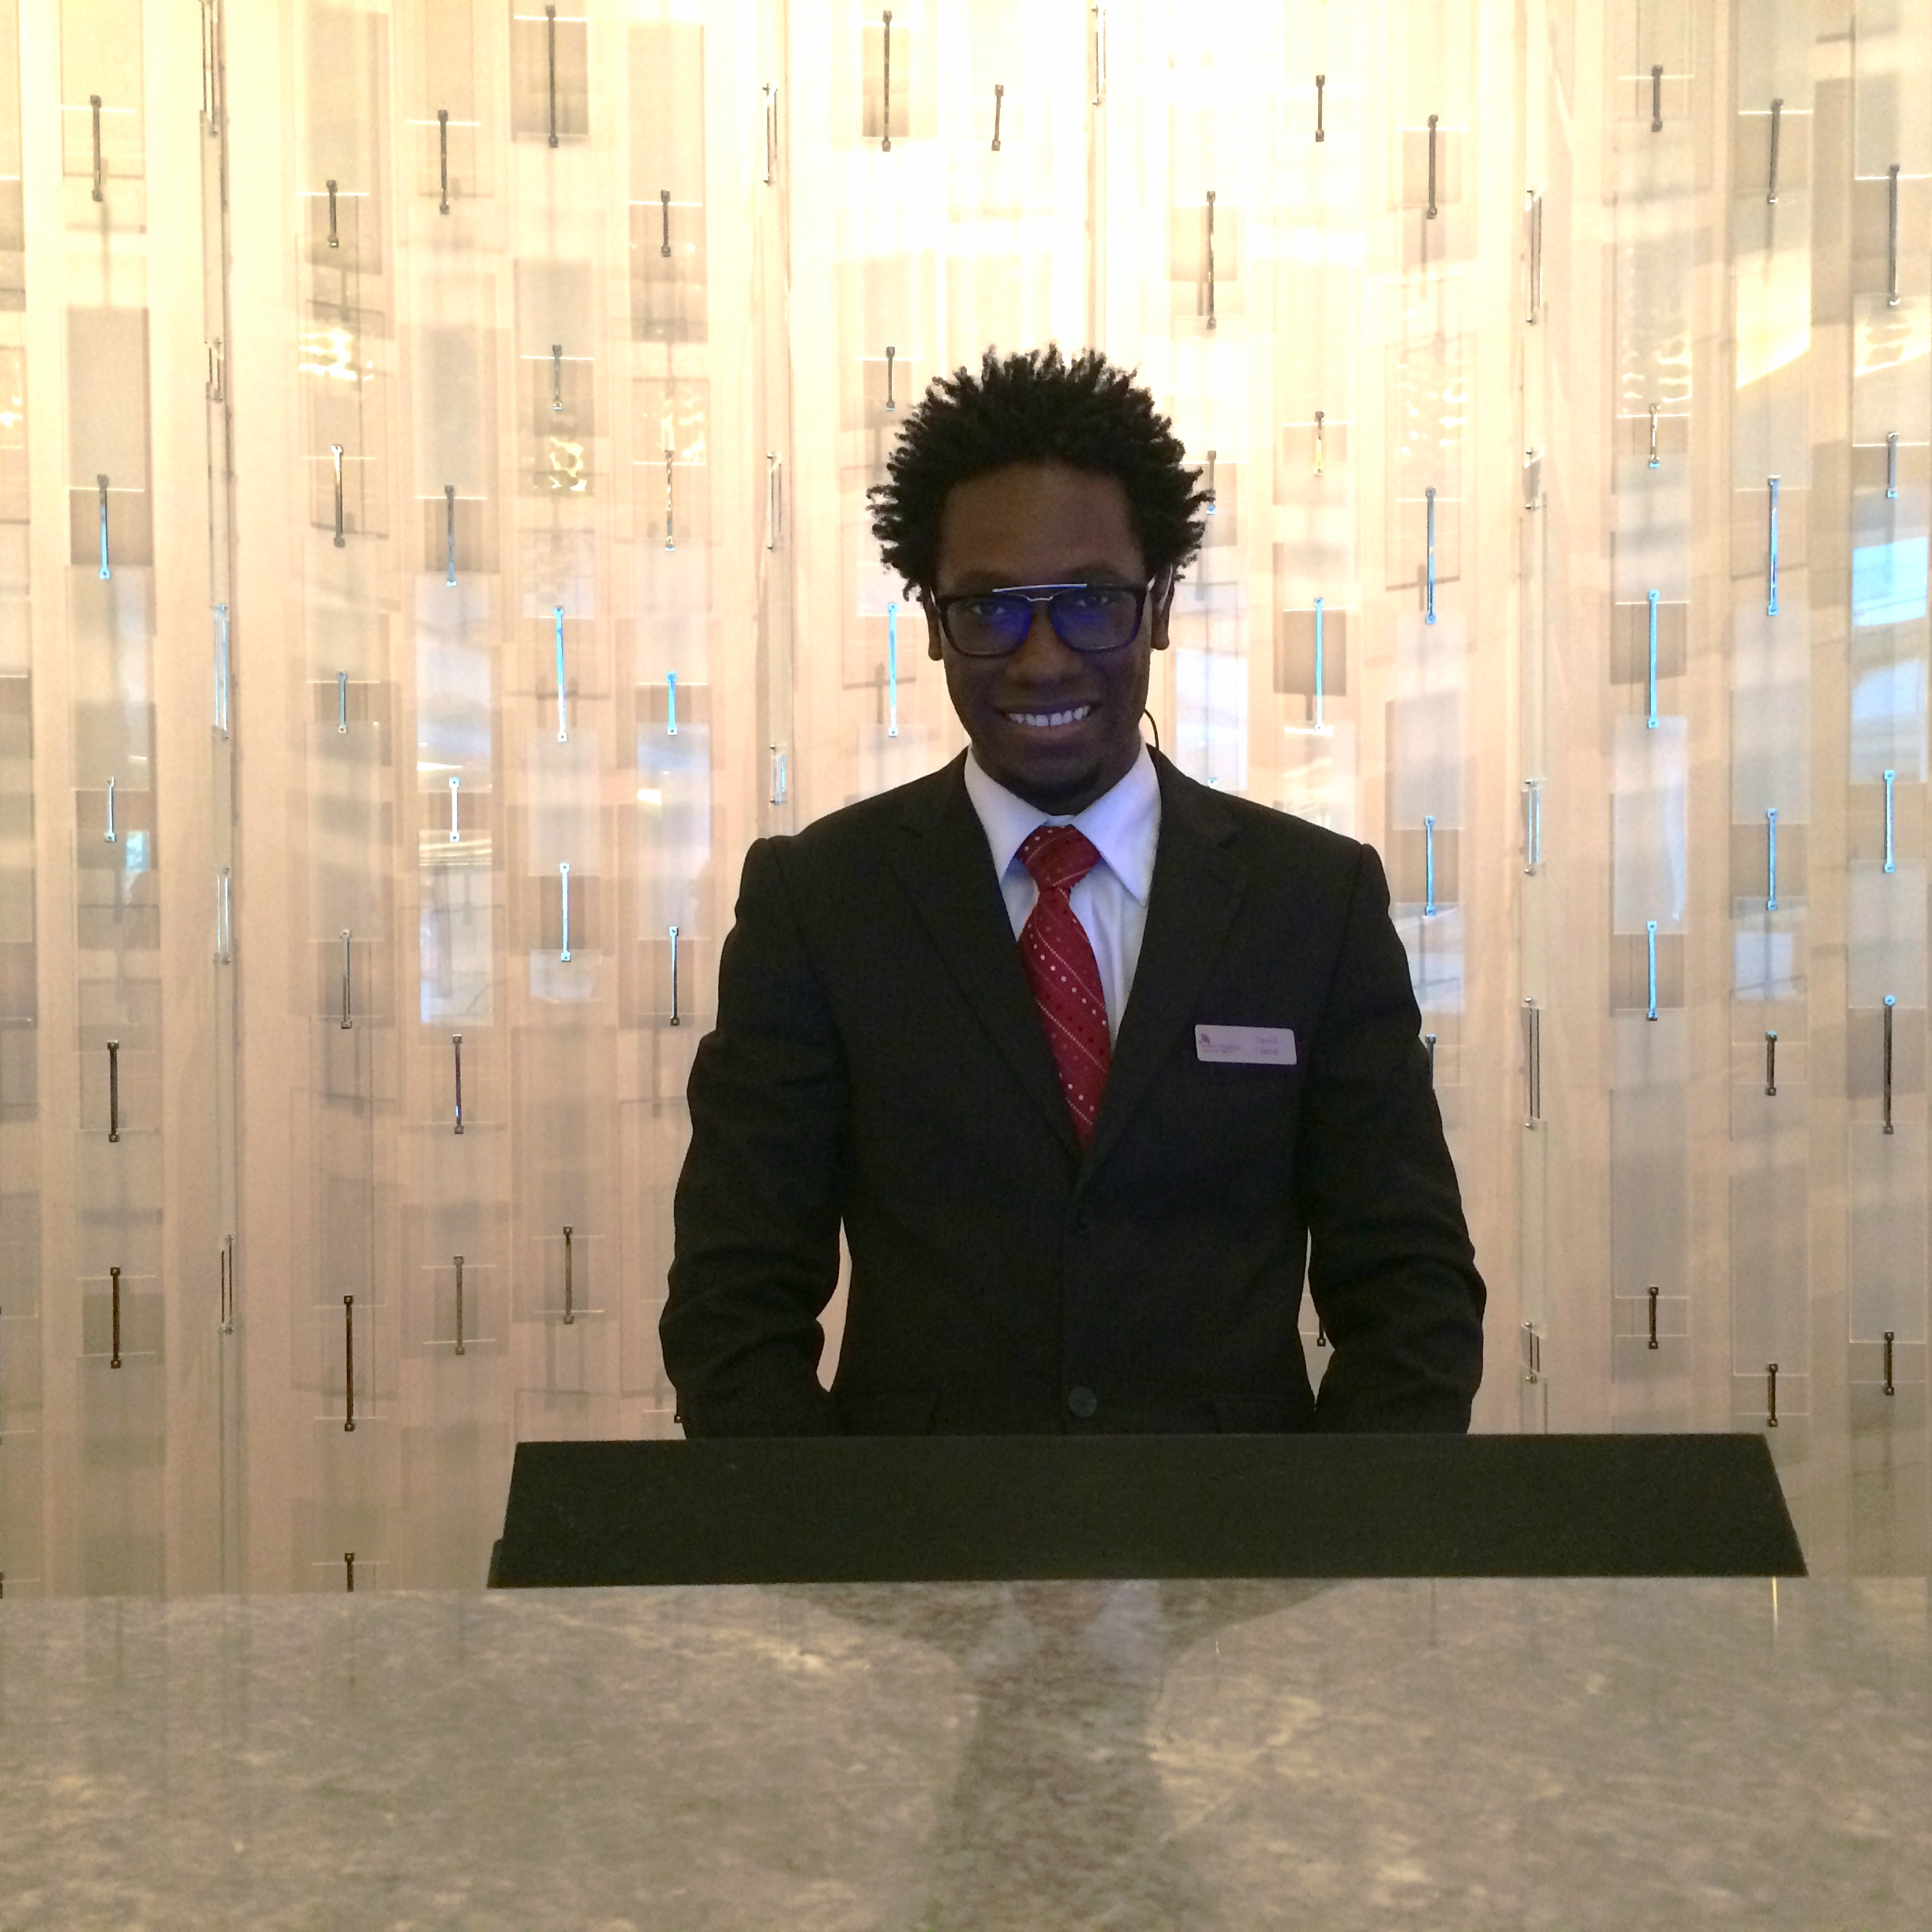 Hotel Clerk David who checked me in